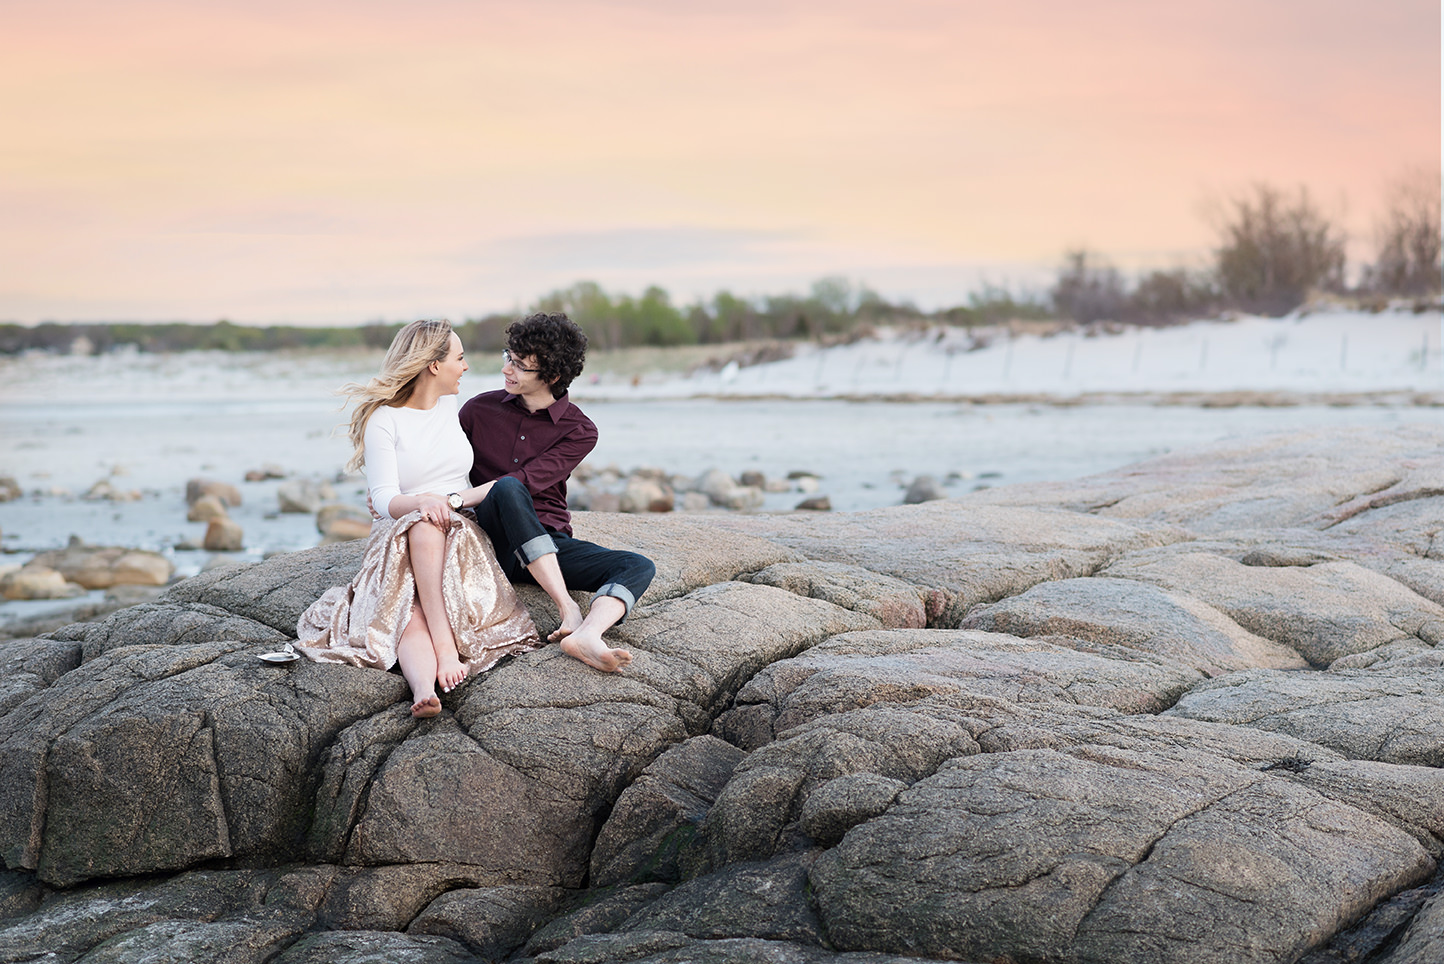 golden sunset engagement photos by Q Hegarty Photography  the best wedding photographer near The Barn at Gibbet Hill, Groton, MA